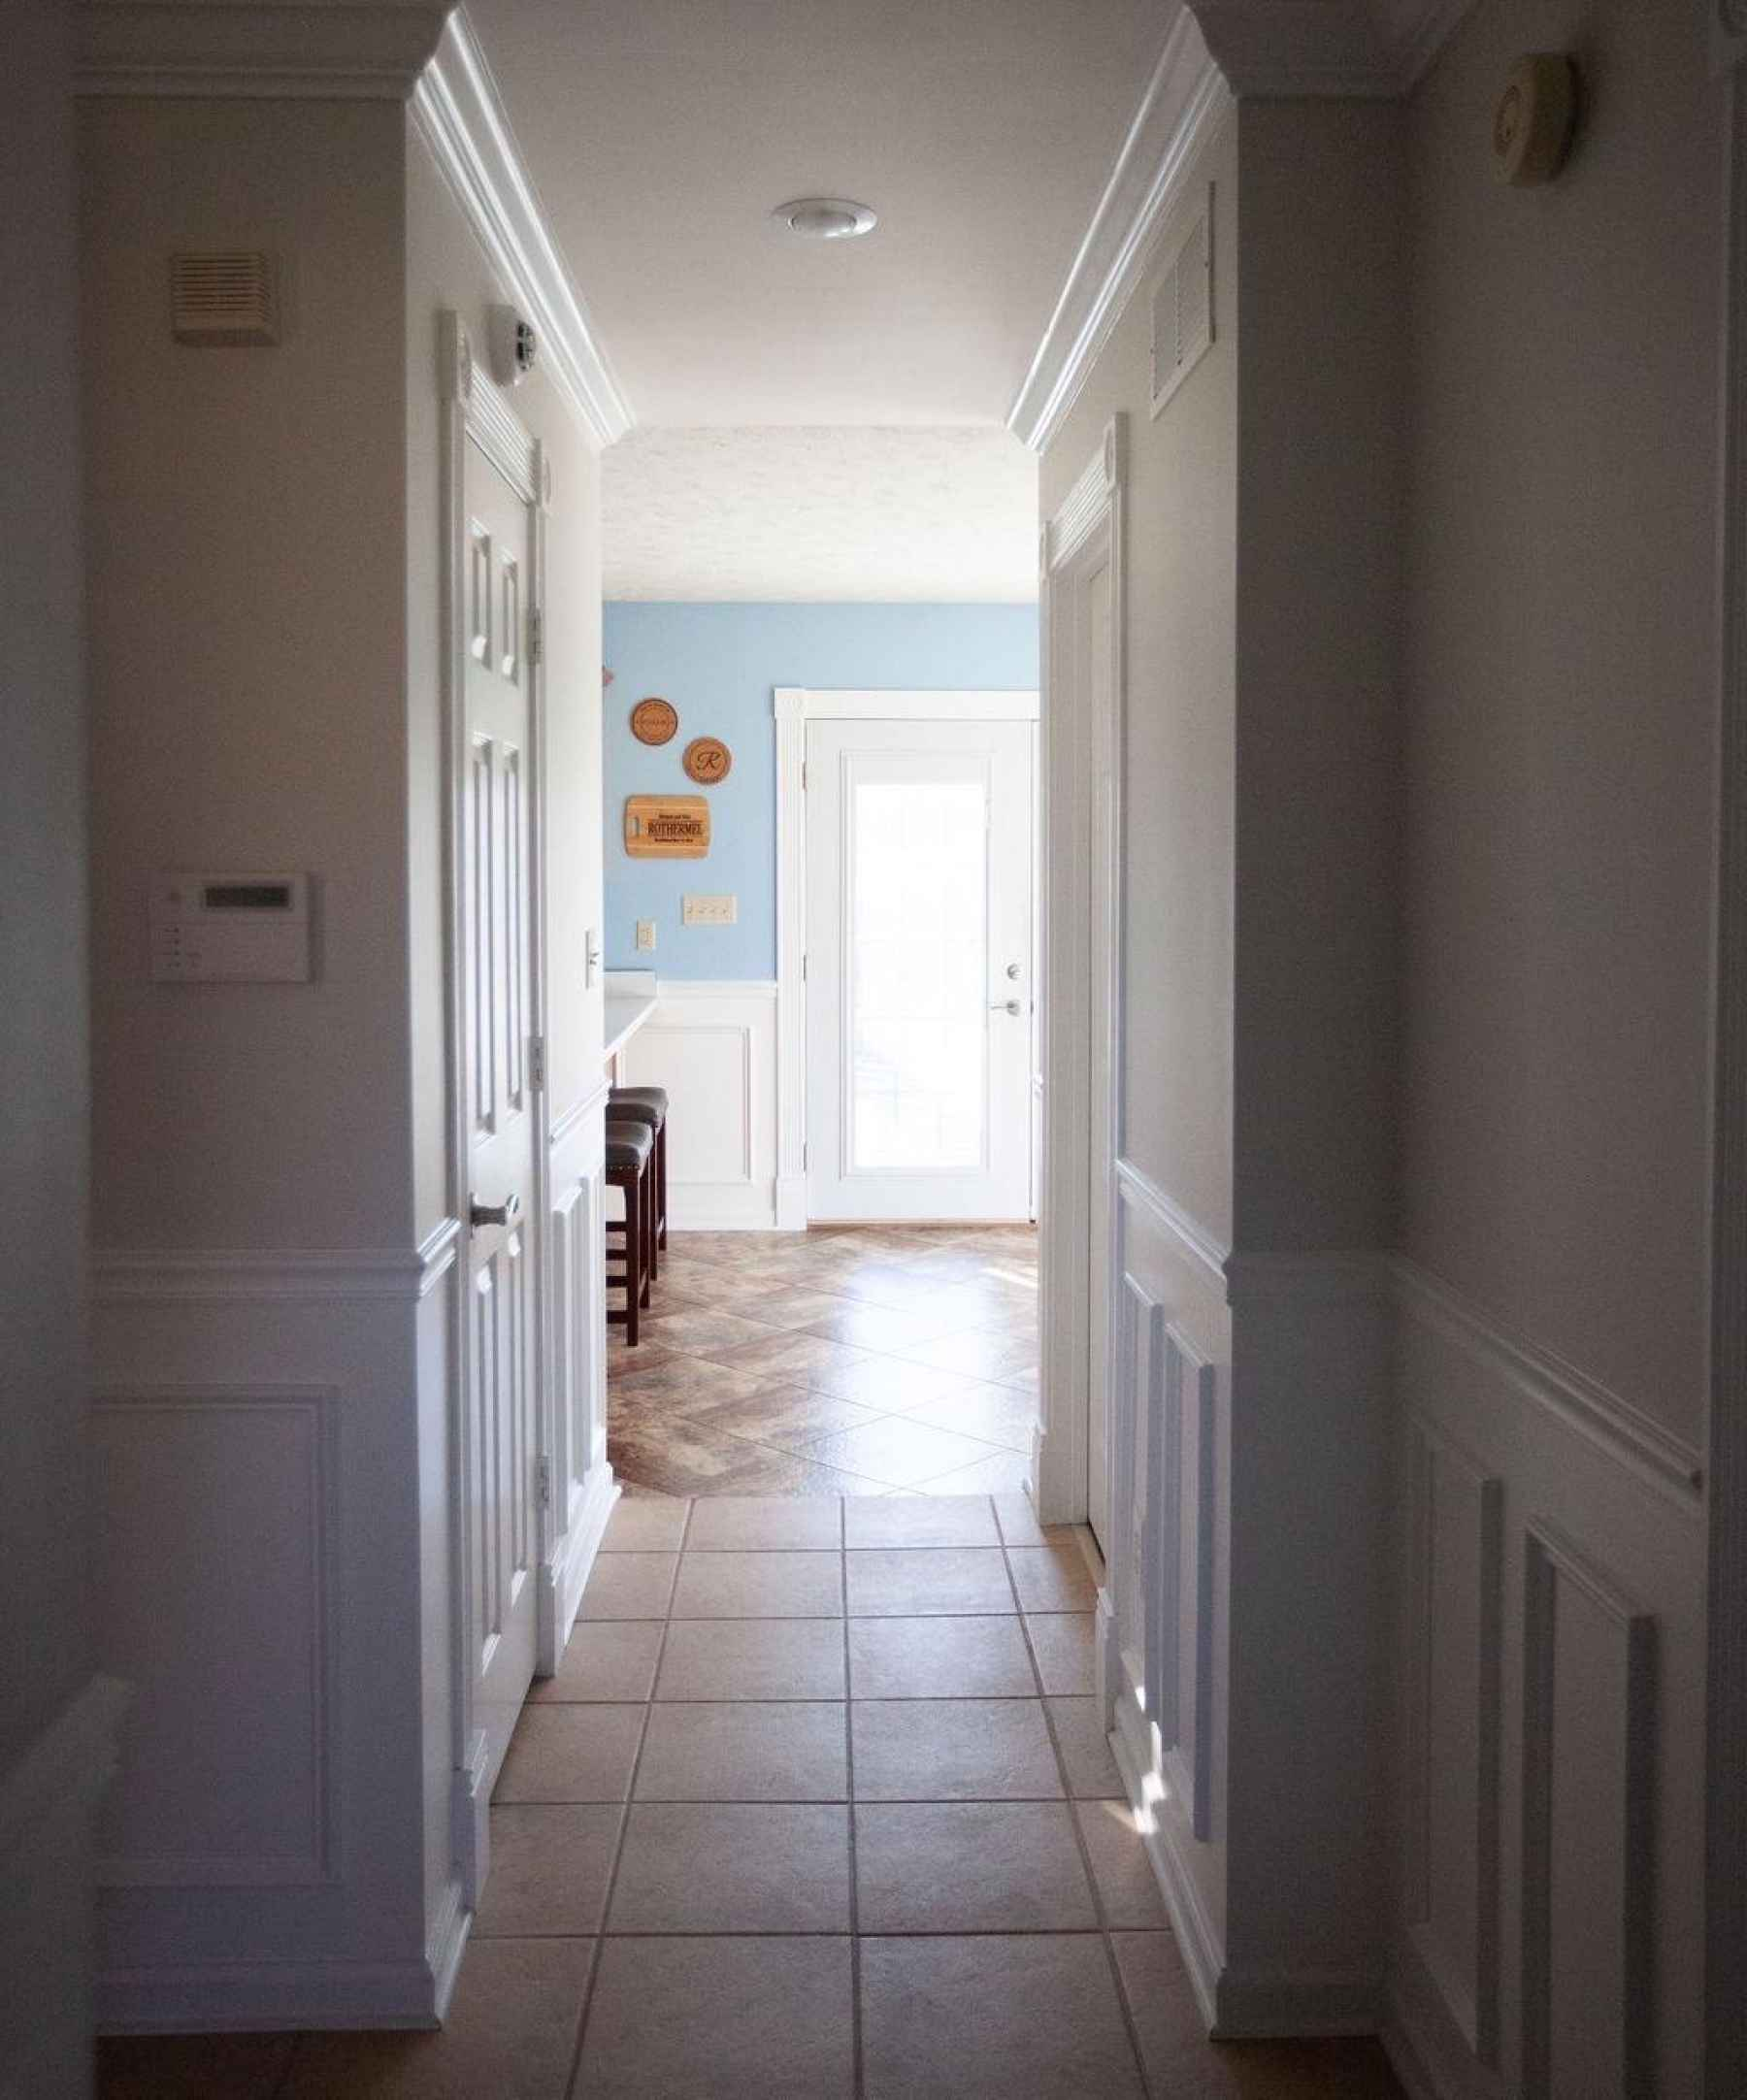 Freshly painted hallway lined with crown molding and wainscoting leading to the kitchen.